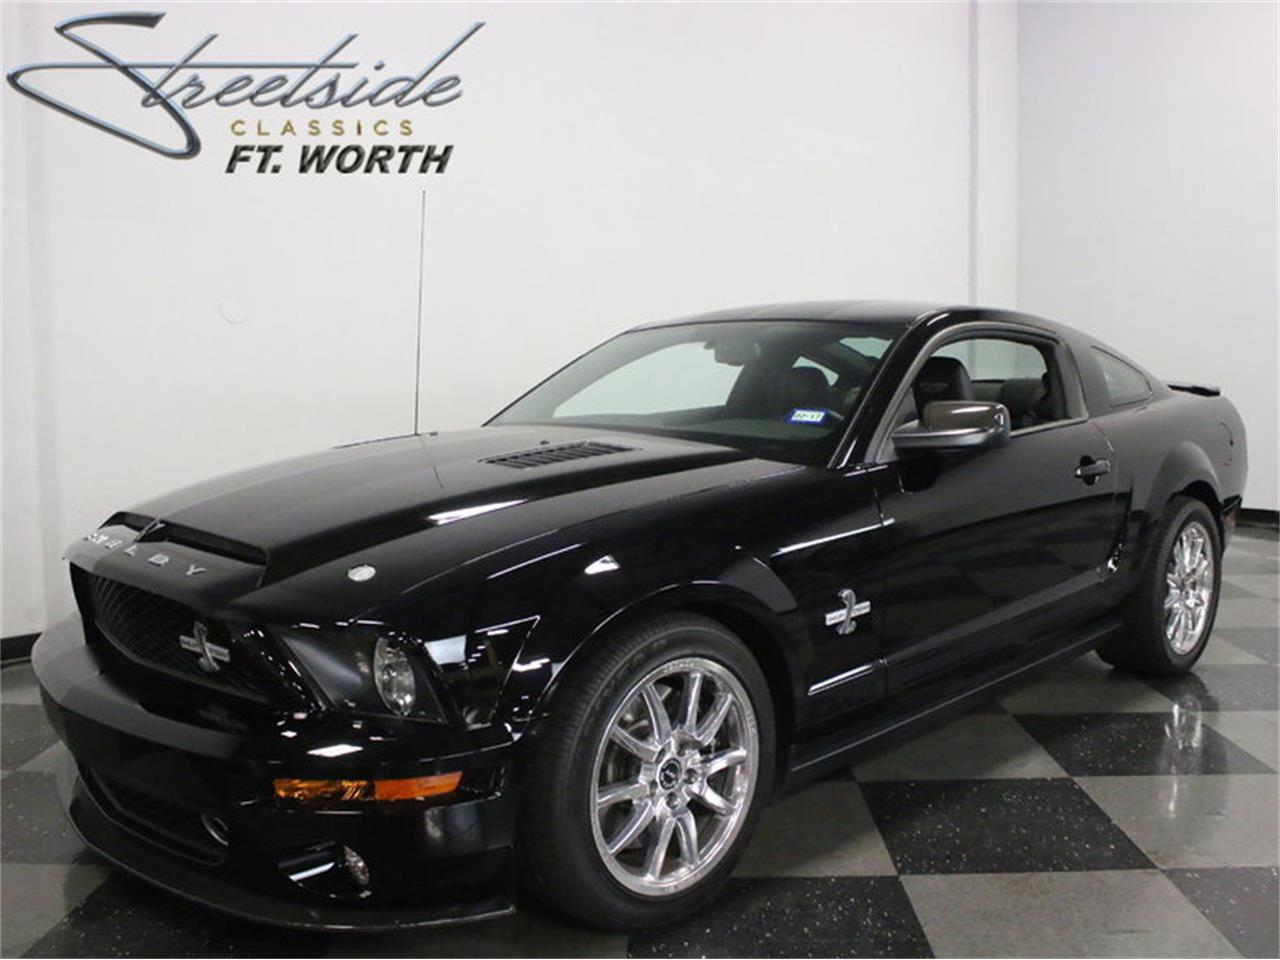 For sale 2009 ford mustang shelby gt500 kr in ft worth texas